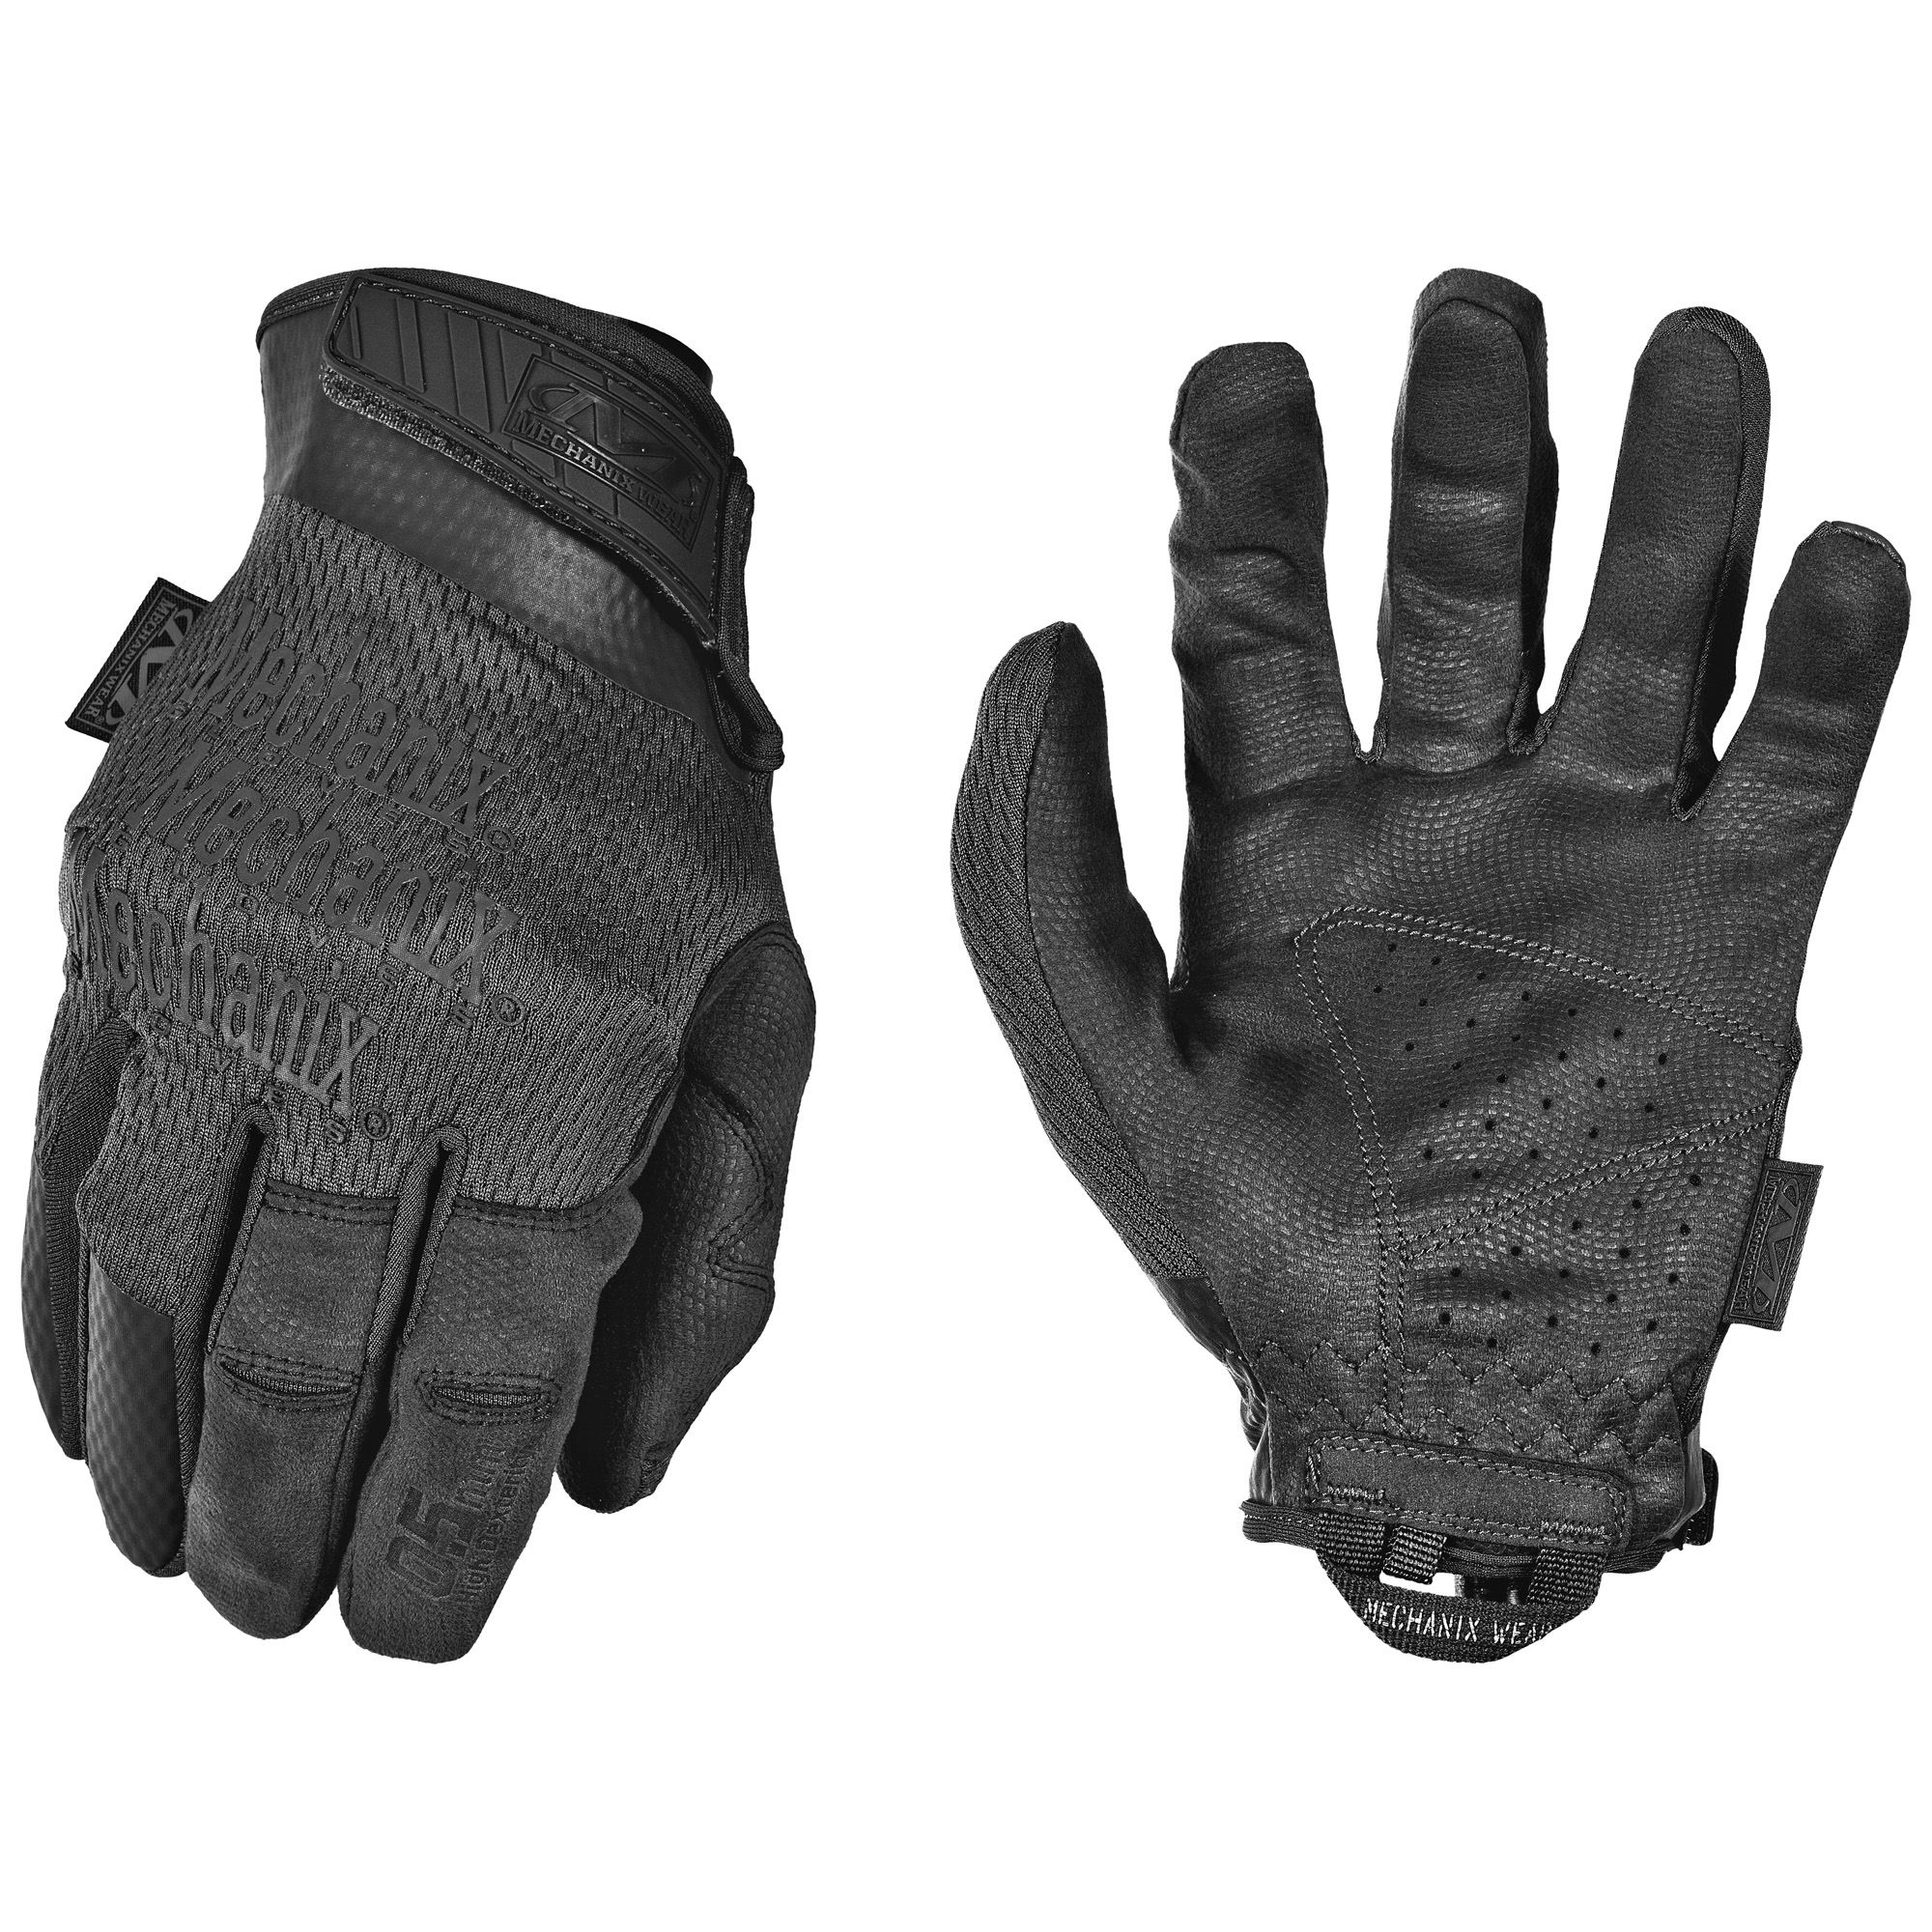 Mechanix Wear Spl 0.5mm Covert Xxl